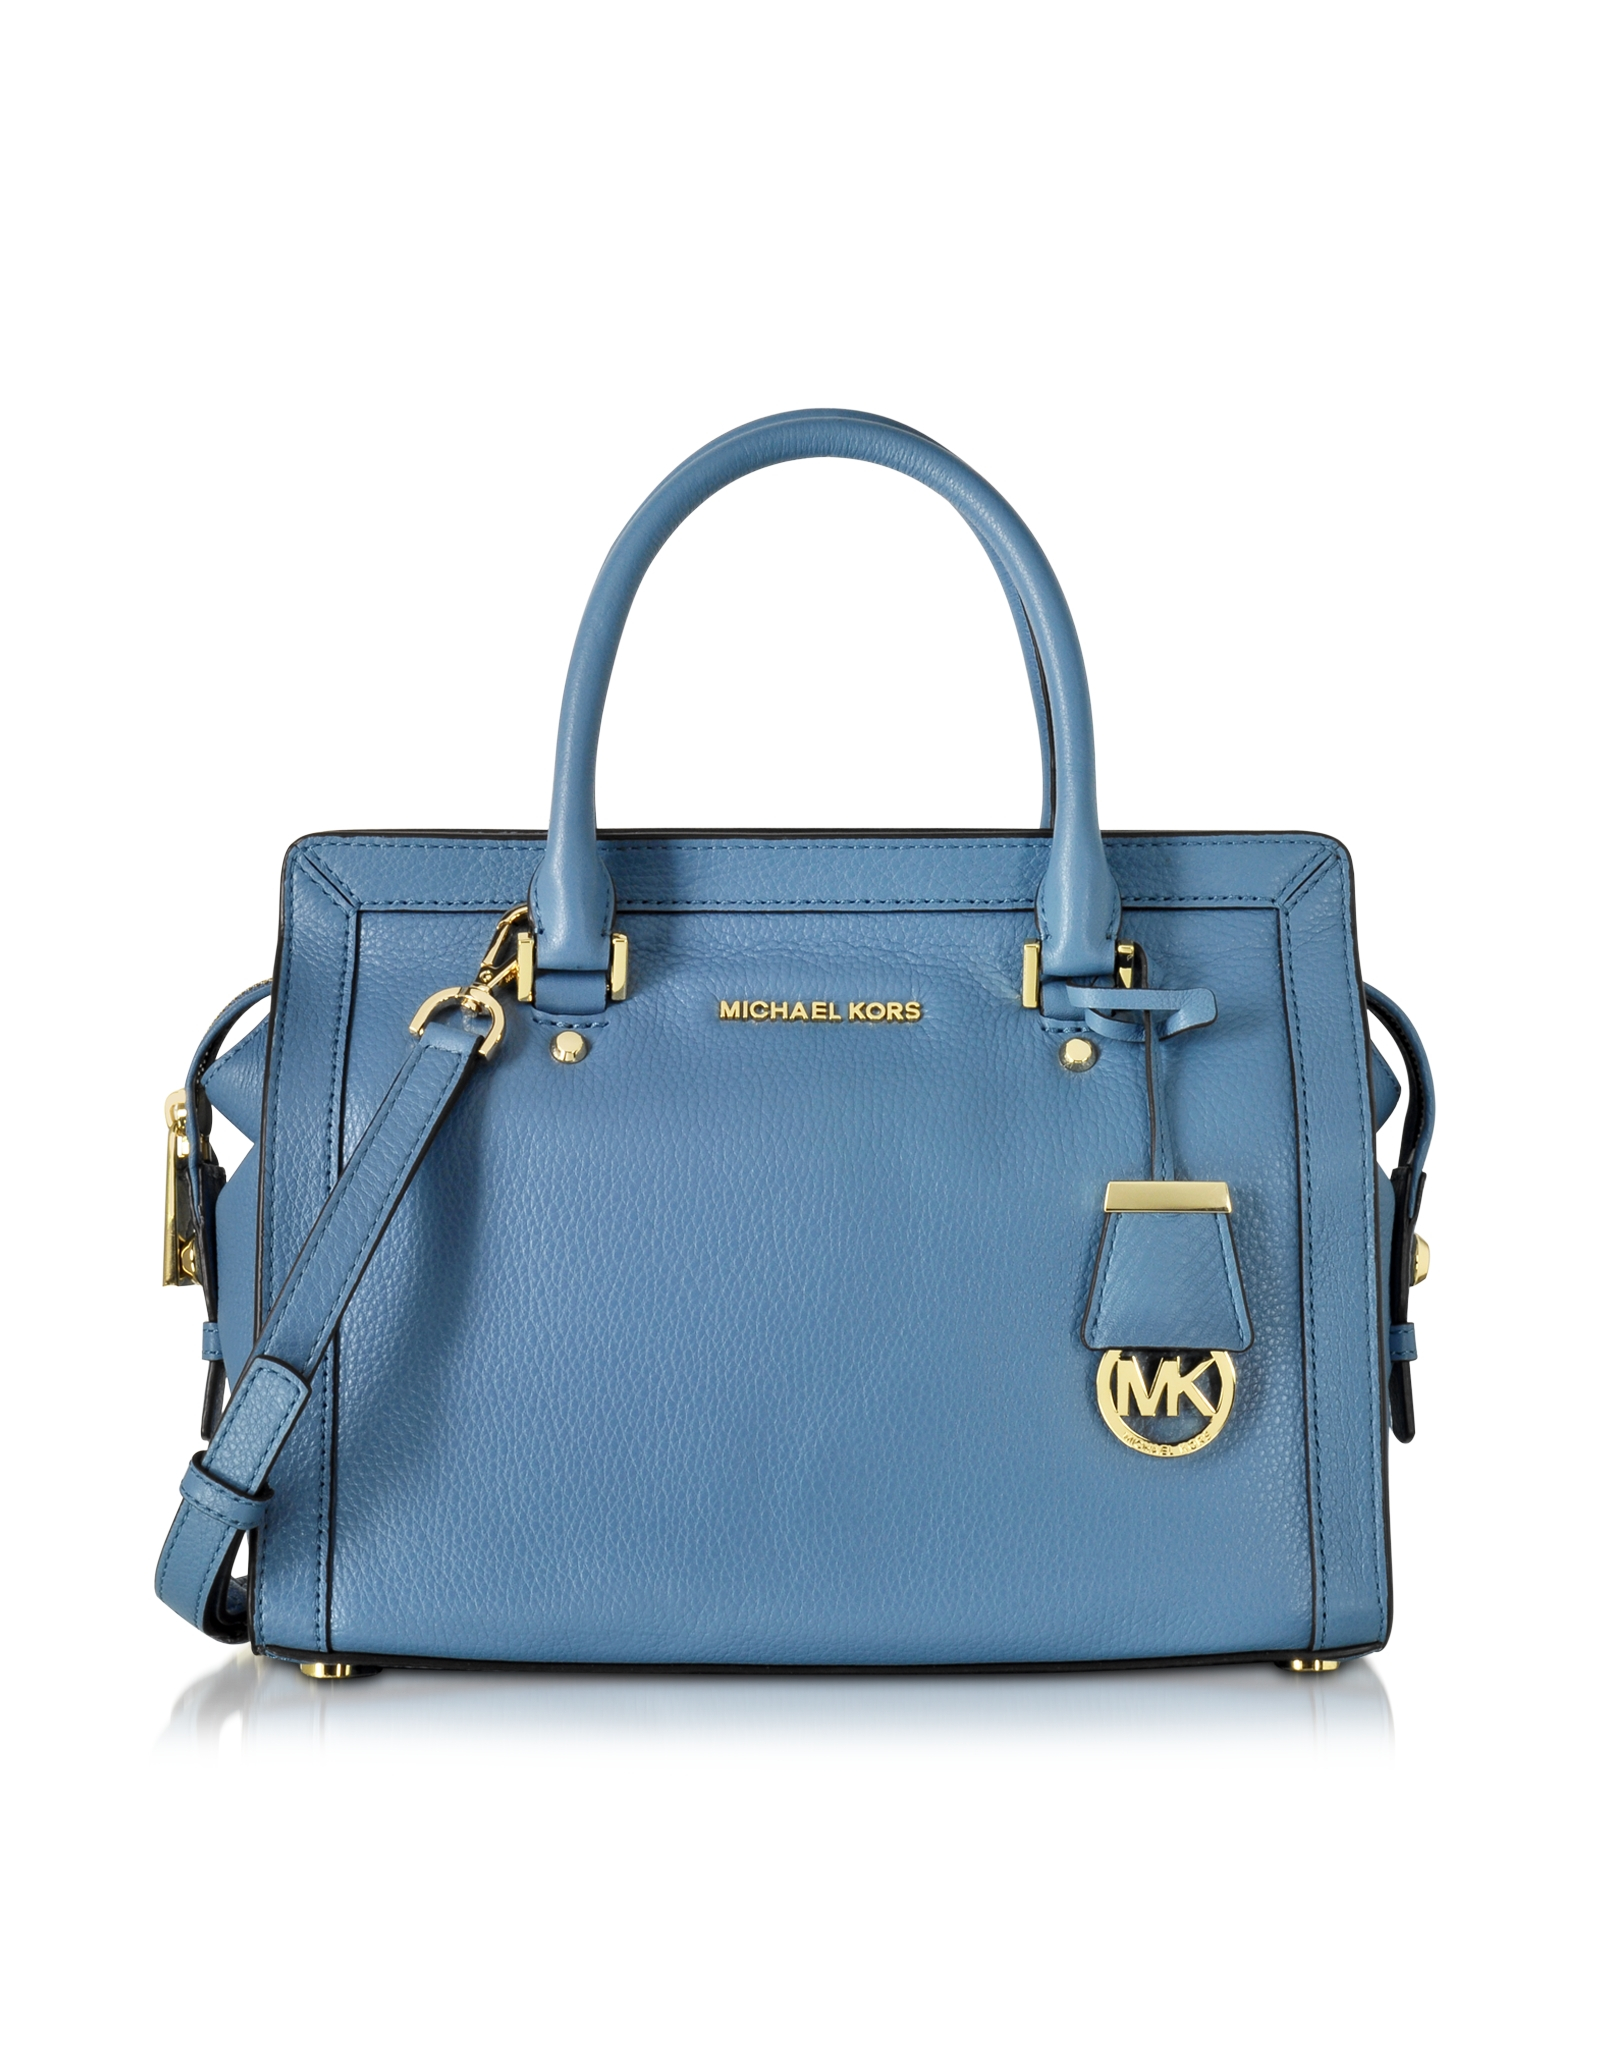 ff55f4373ca3 Lyst - Michael Kors Collins Medium Leather Satchel Bag in Blue